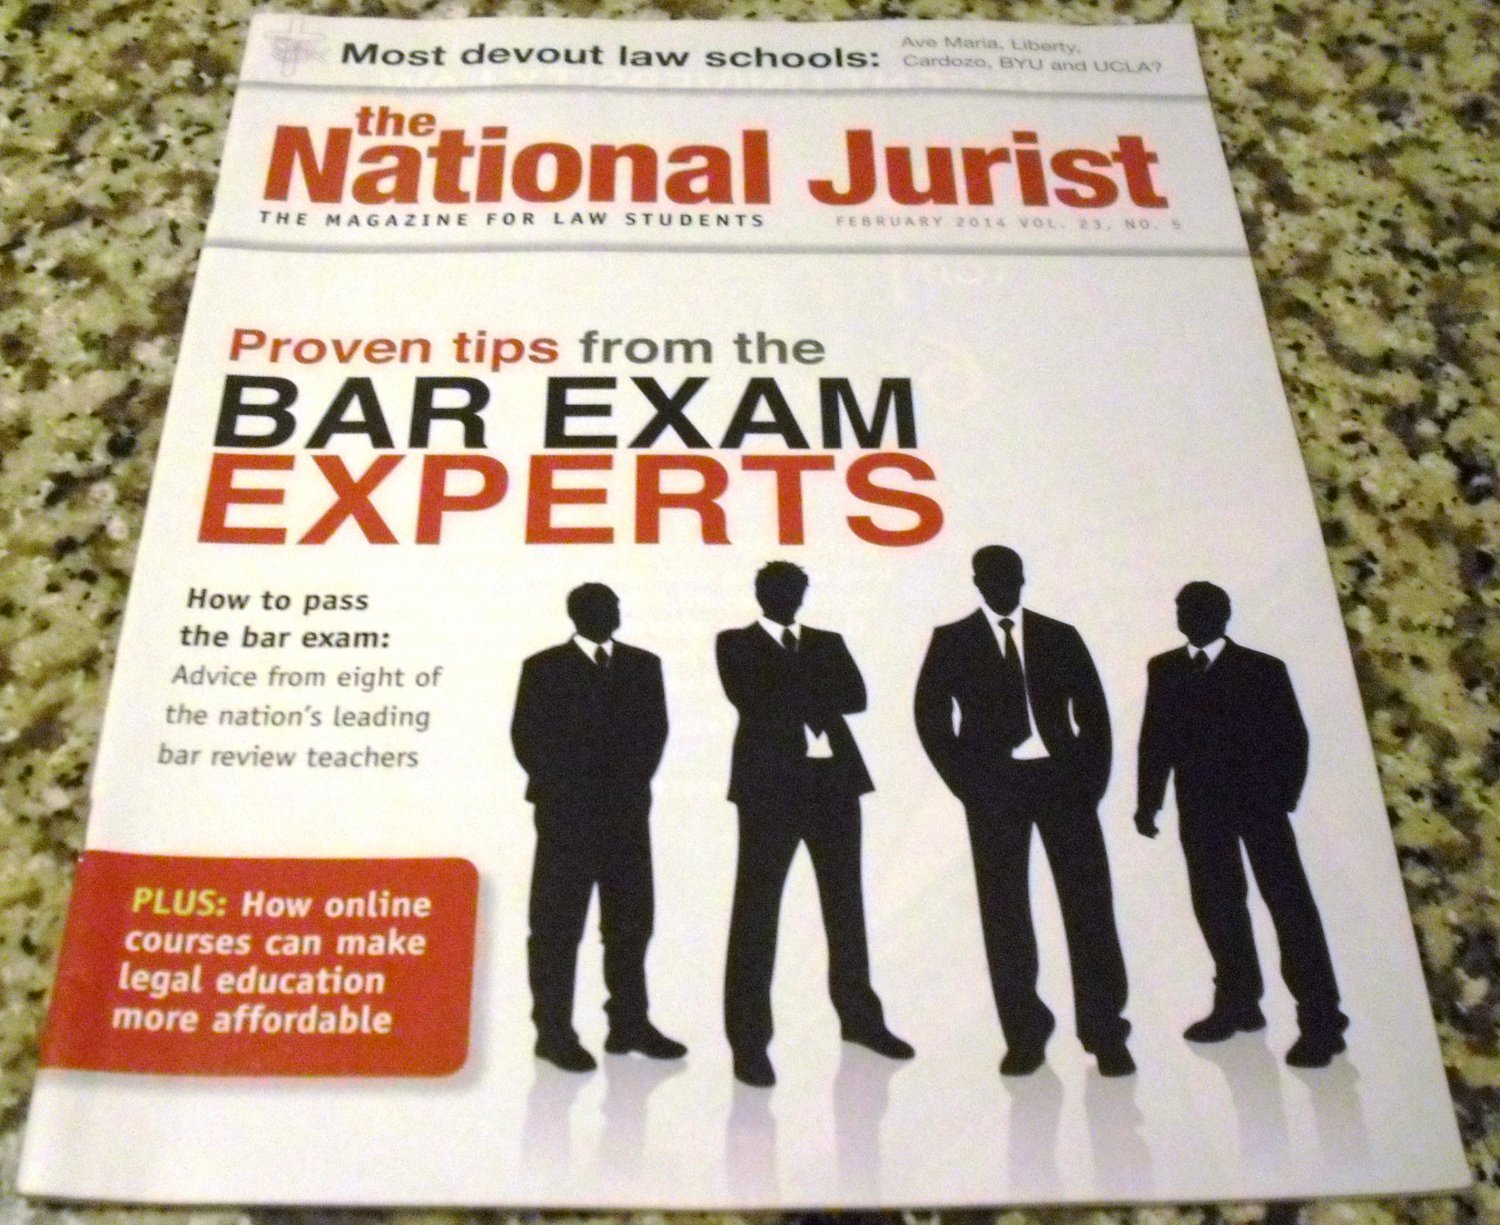 The National Jurist, February 2014, Vol. 23, No. 5